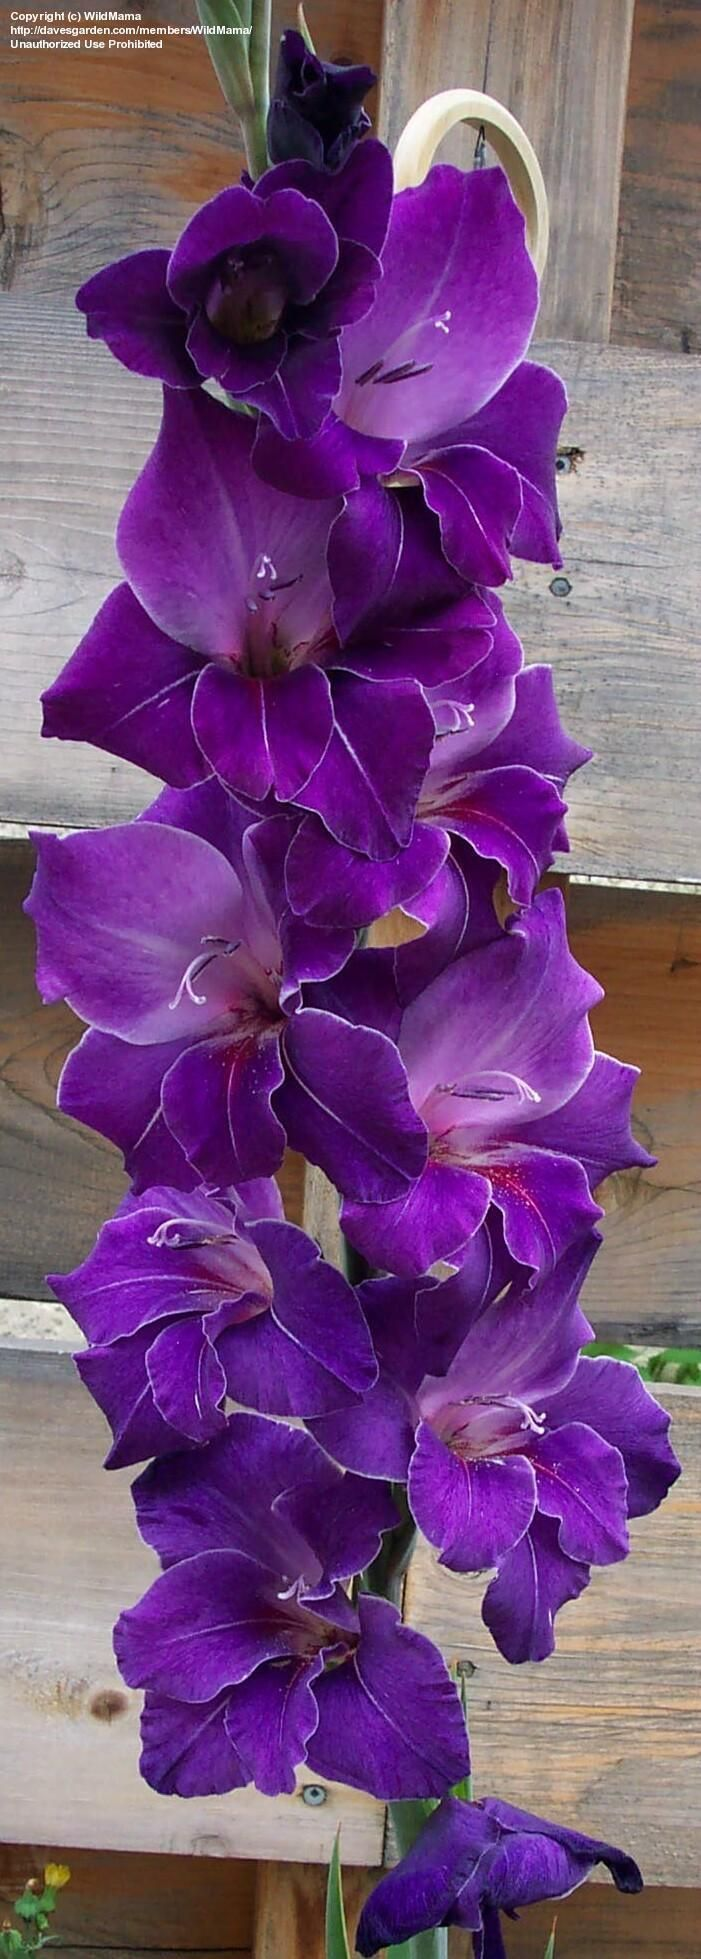 Gladiolus 'Violetta' (Gladiolus x hortulanus) something like this??? the bloom gets about 3' tall-they are a perennial and only bloom about 3 weeks